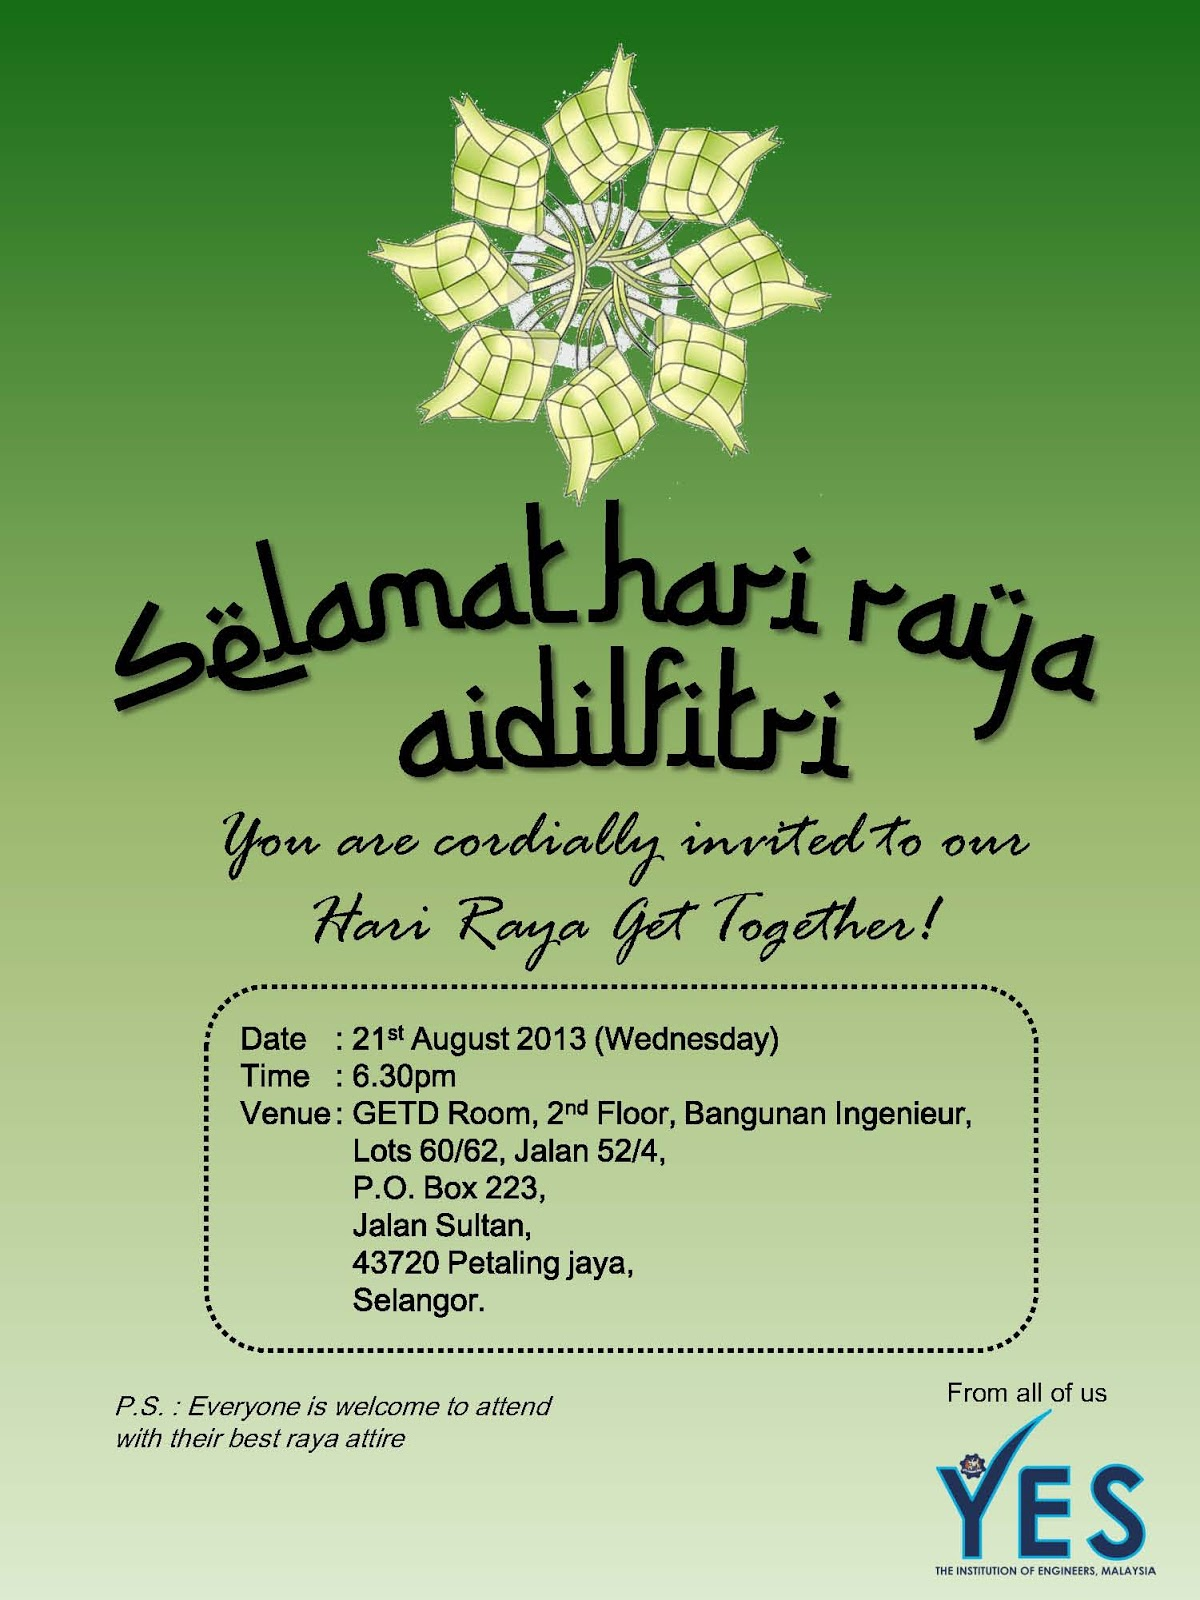 Invitation To Our Hari Raya Get Together  Invitation Card For Get Together